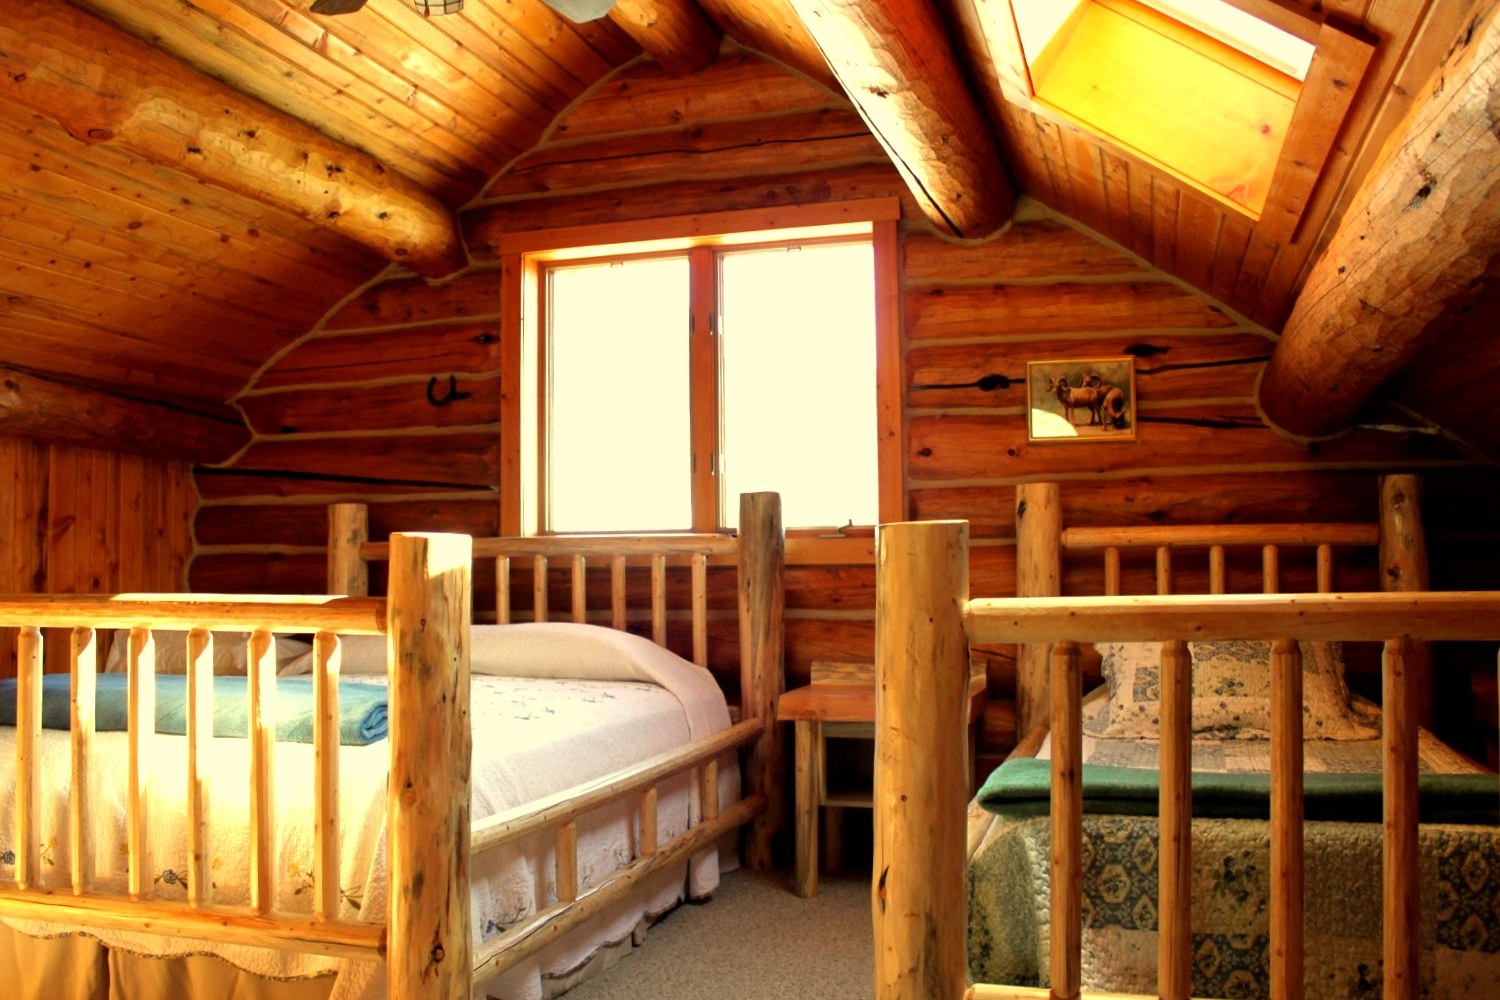 lodging - Double Diamond X Ranch can accommodate around 45 guests throughout 10 rustic, beautifully appointed guest cabins. The Ranch also hosts events such as weddings and reunions.